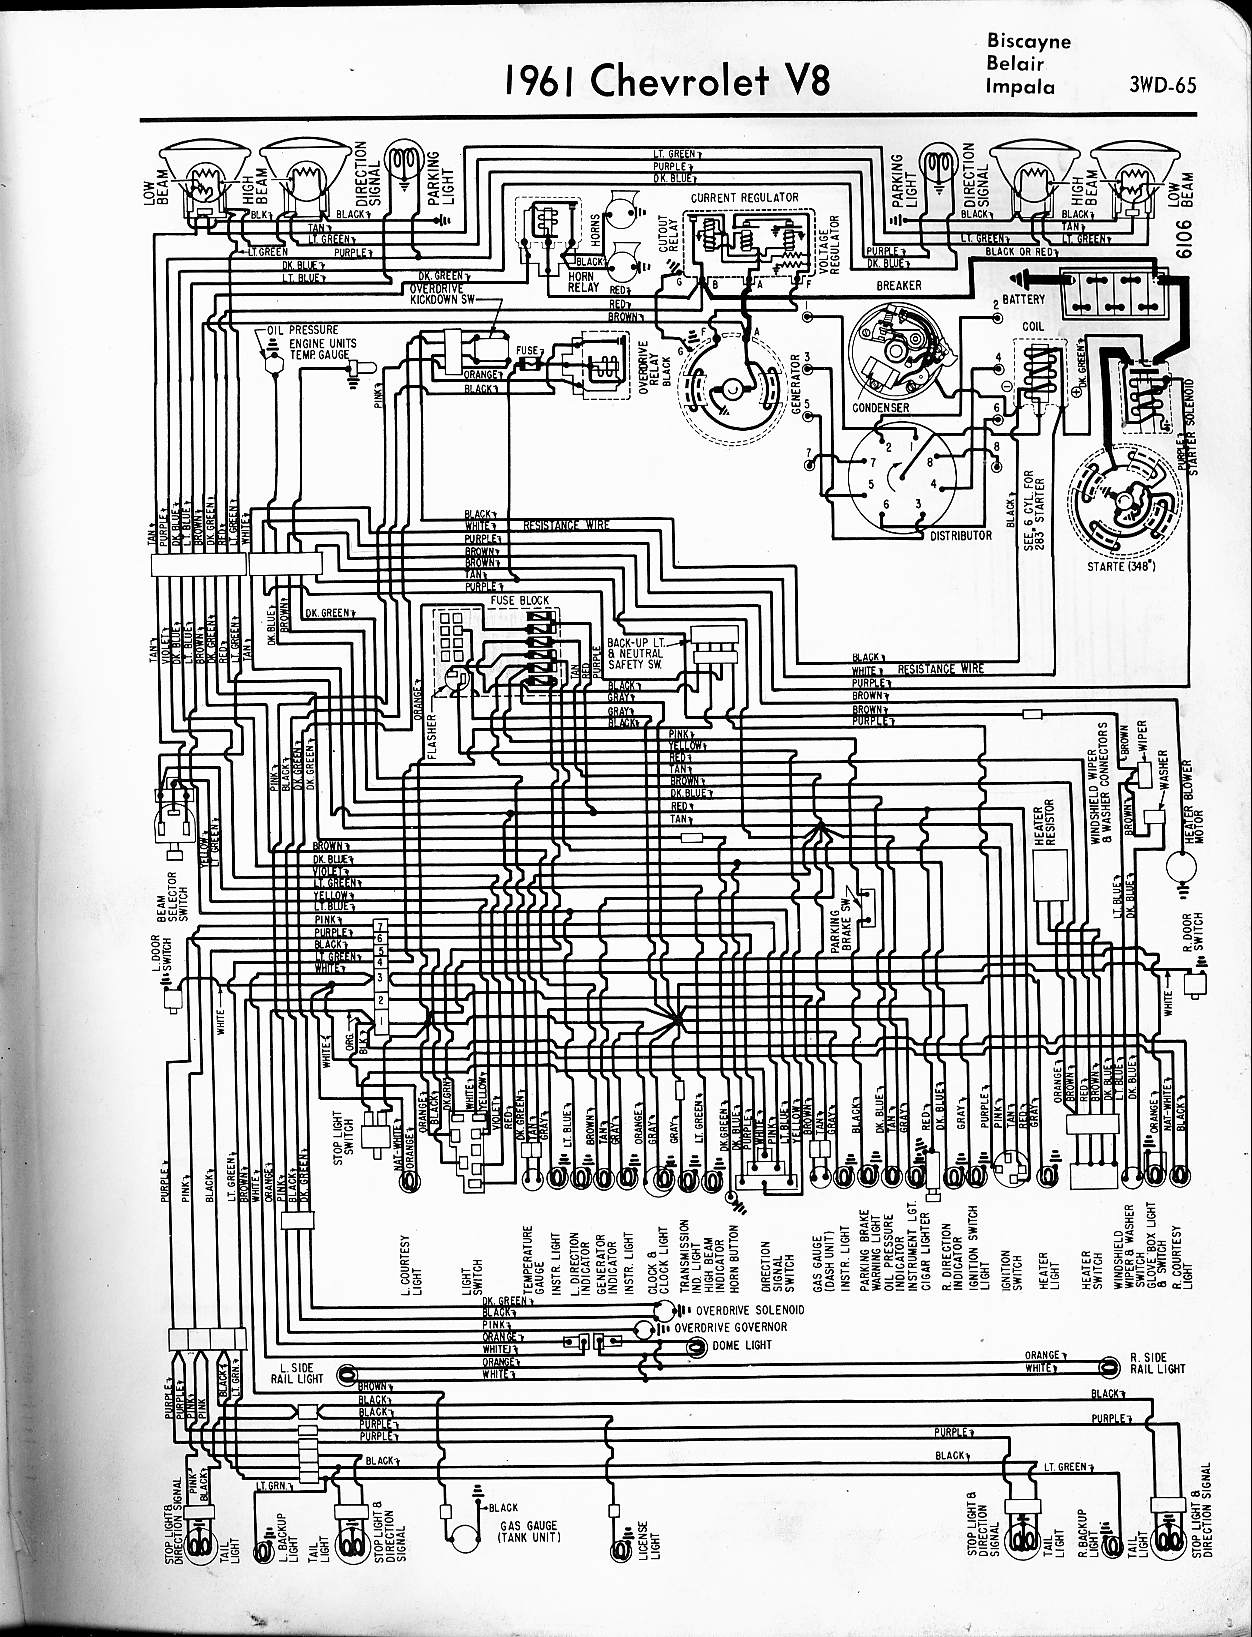 1964 corvair wiring diagram wiring diagram1964 corvair wiring diagram wiring diagram